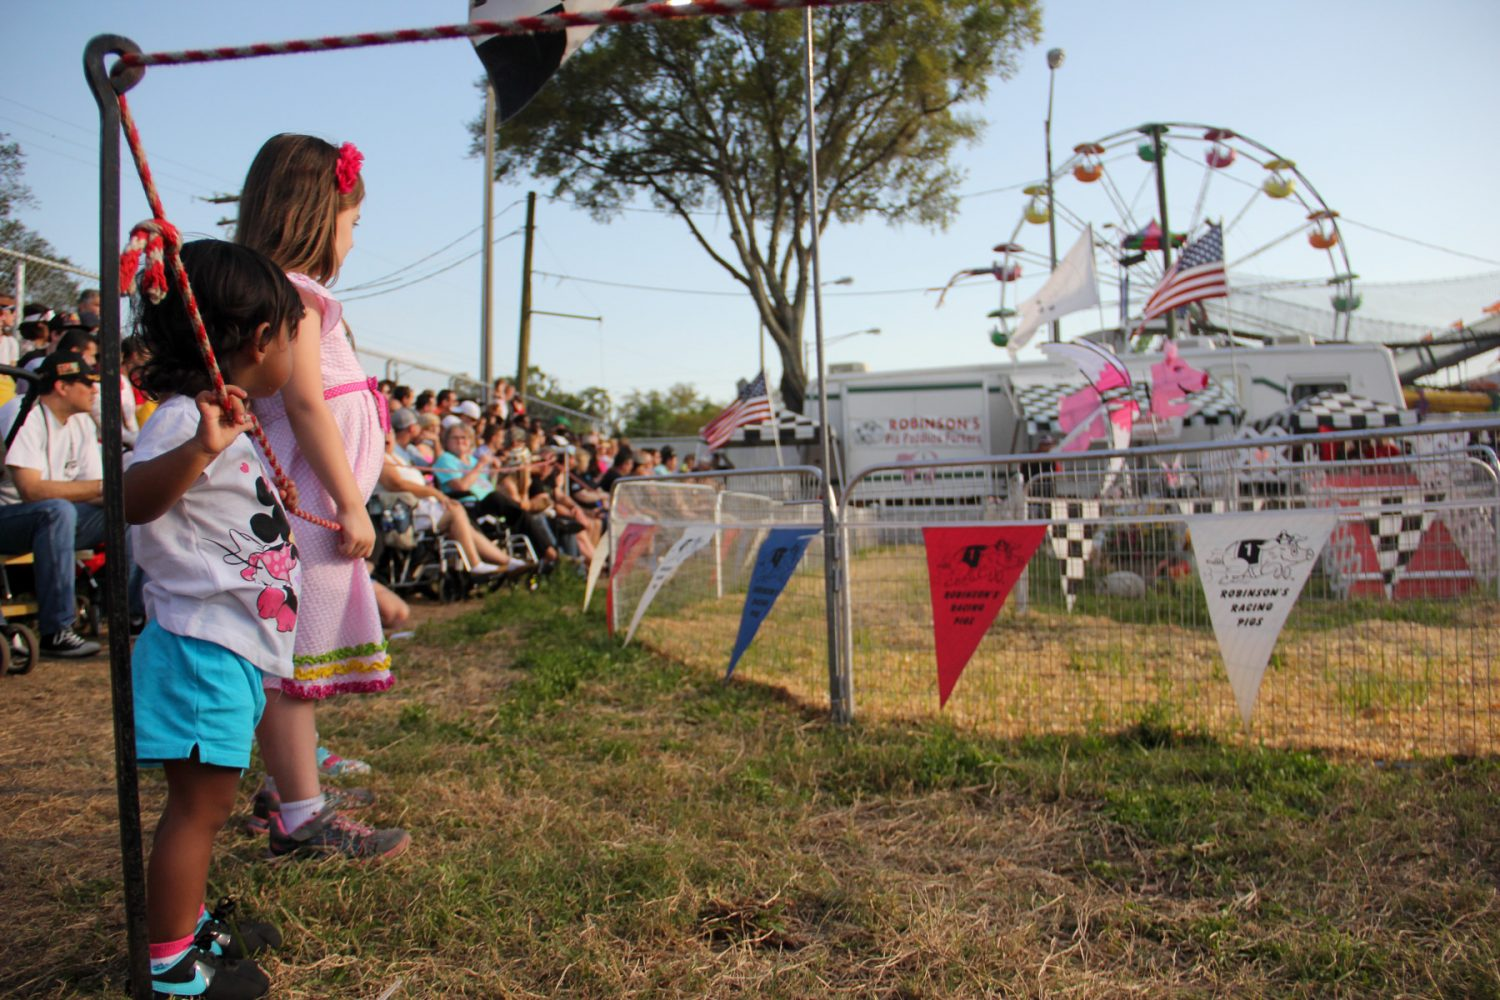 Two girls wait for the Robinson's Pig Race to begin at the Florida Strawberry Festival on Sunday afternoon. Mar. 9, 2014. The pigs are coaxed to race around the track with the aid of Oreo cookies.